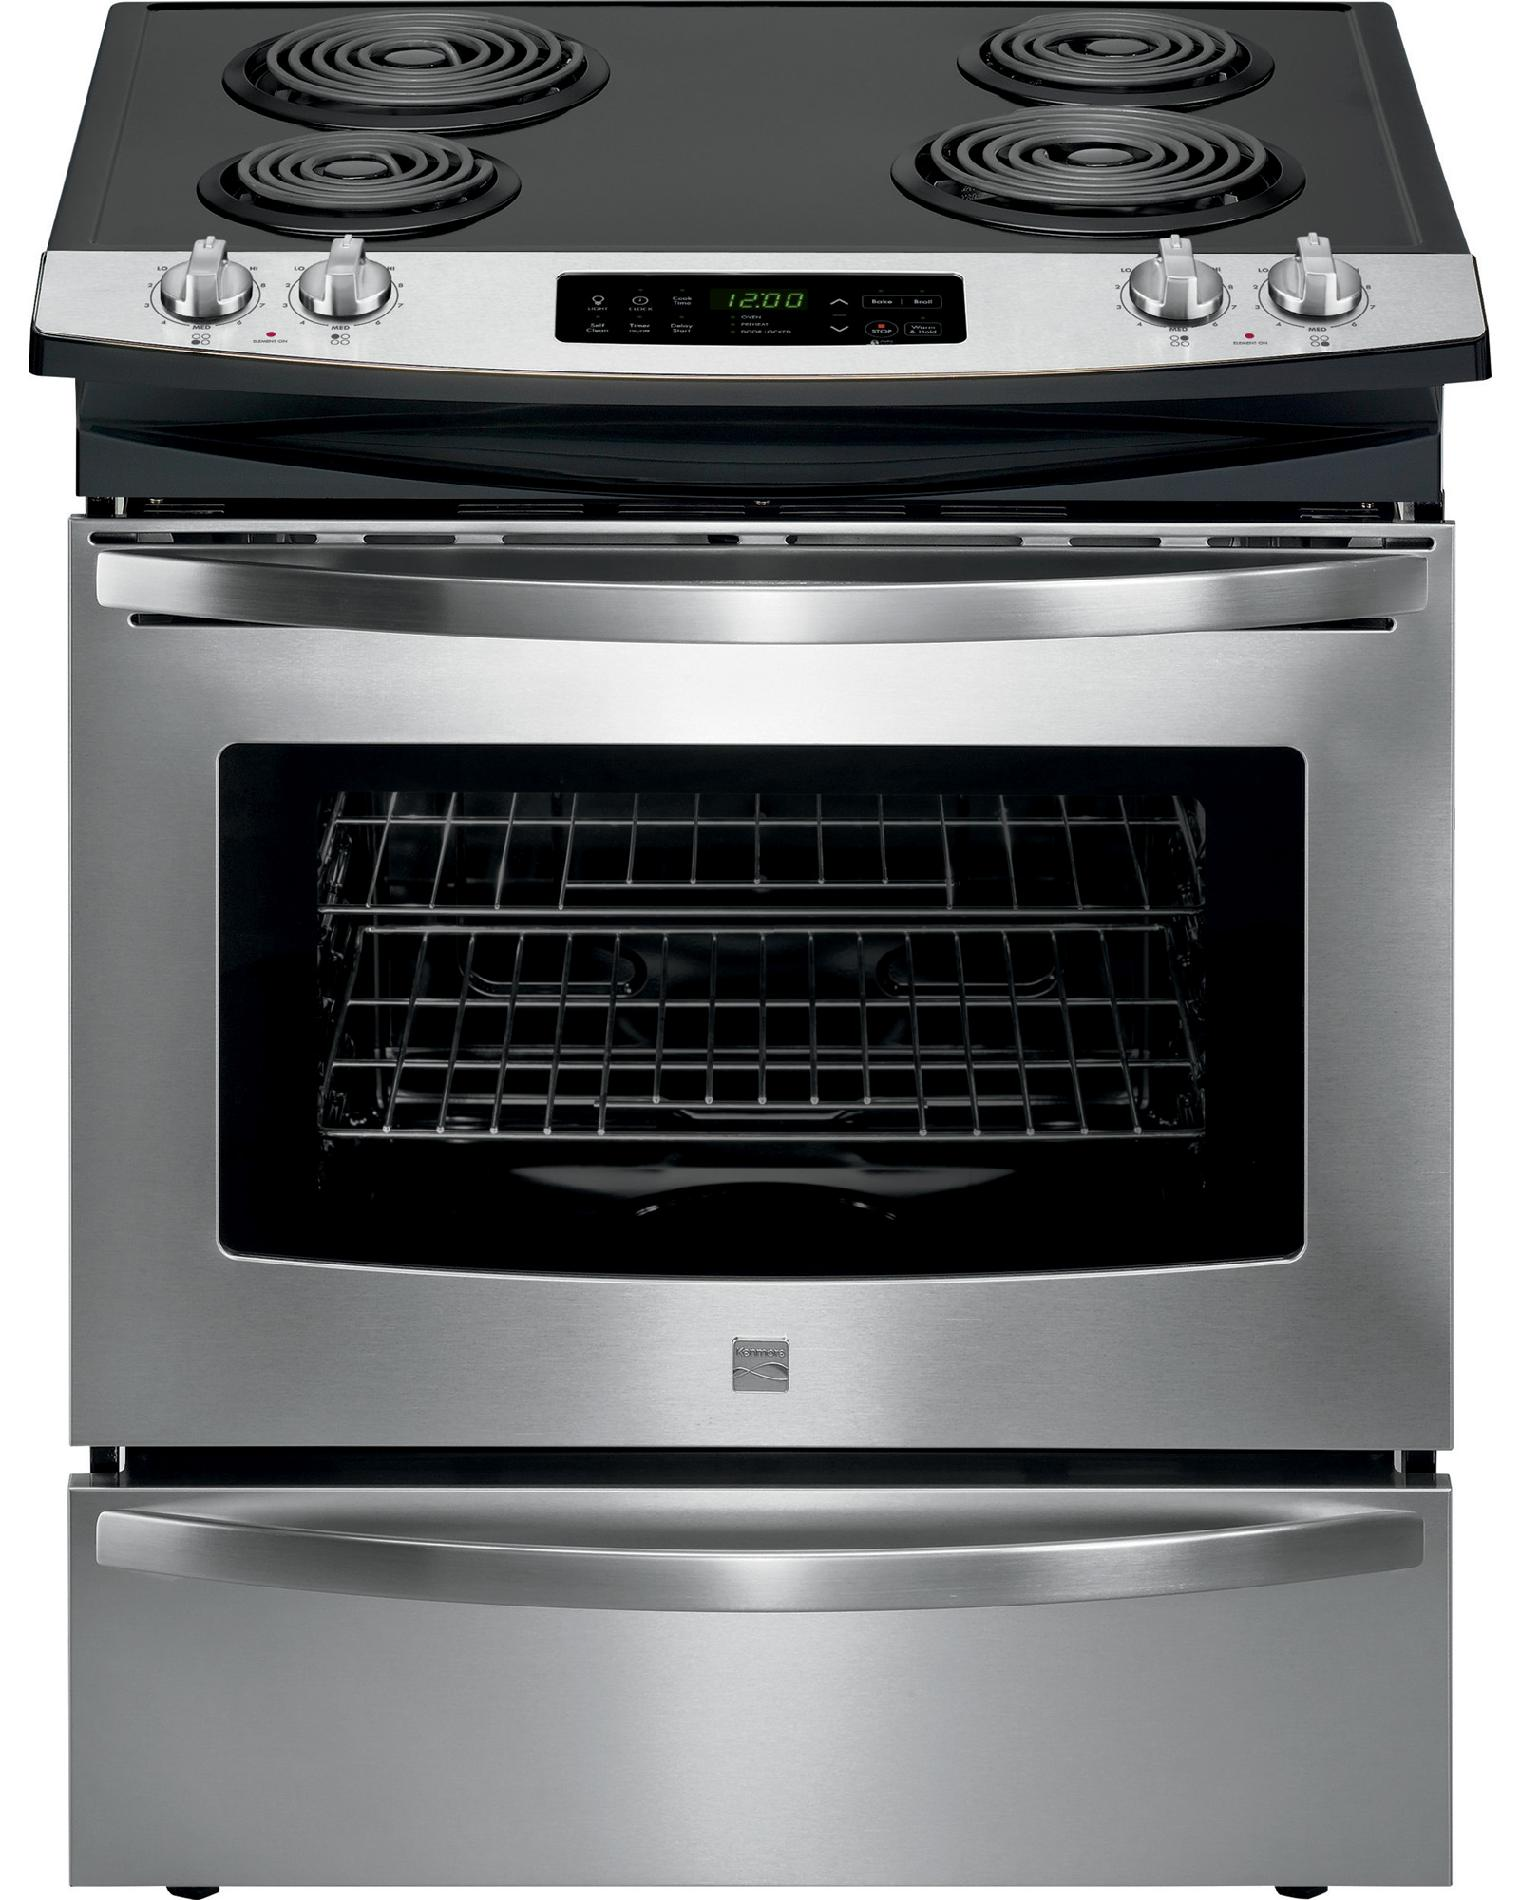 Wiring Diagram For Kenmore Electric Range